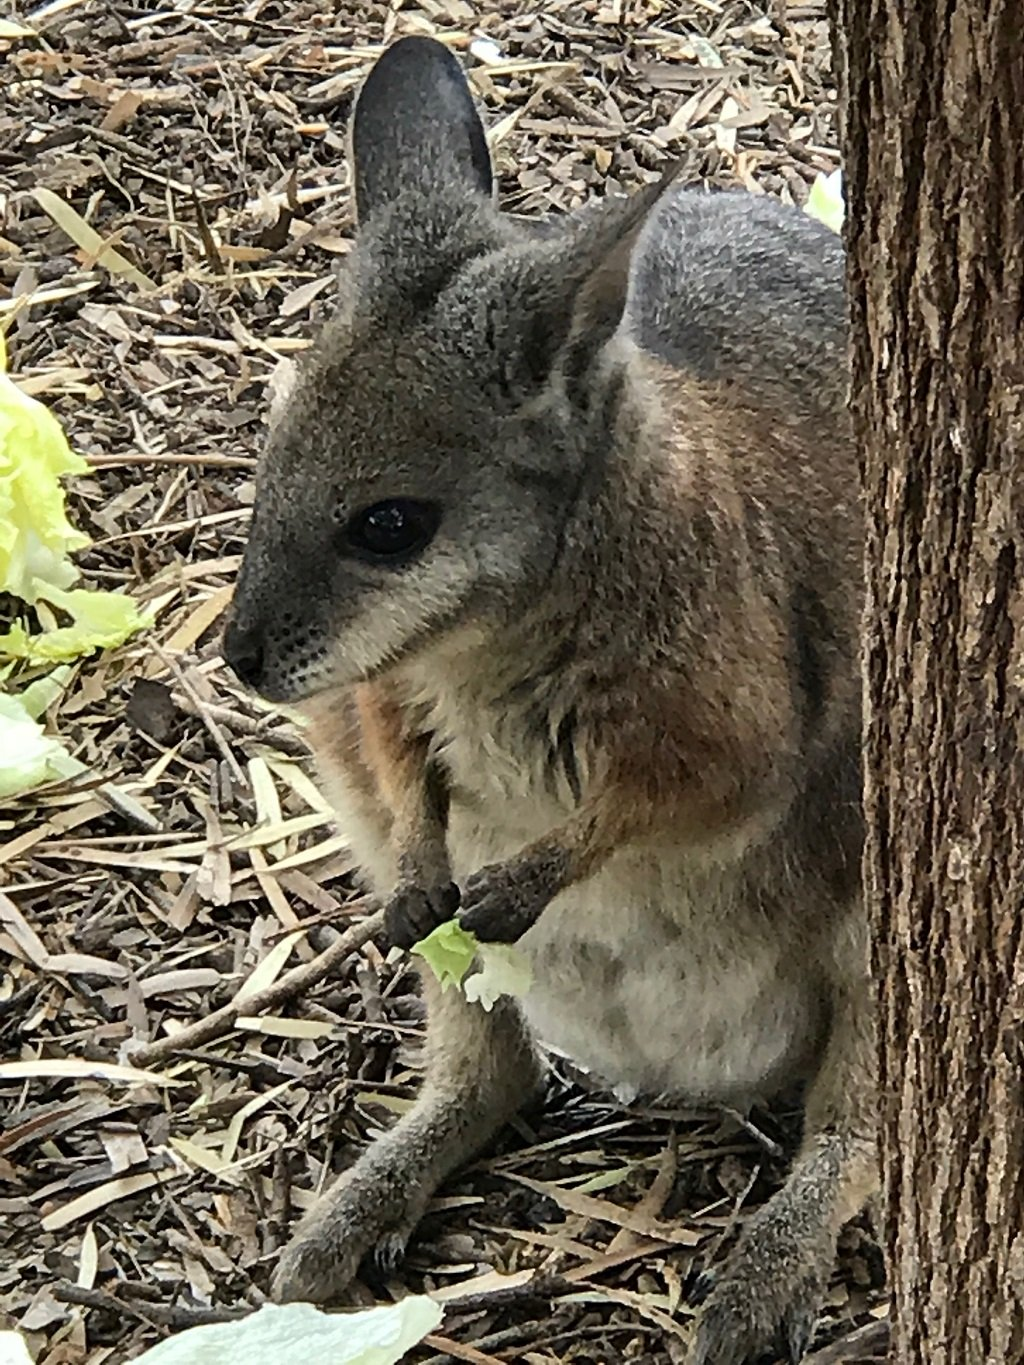 a wallaby by a tree